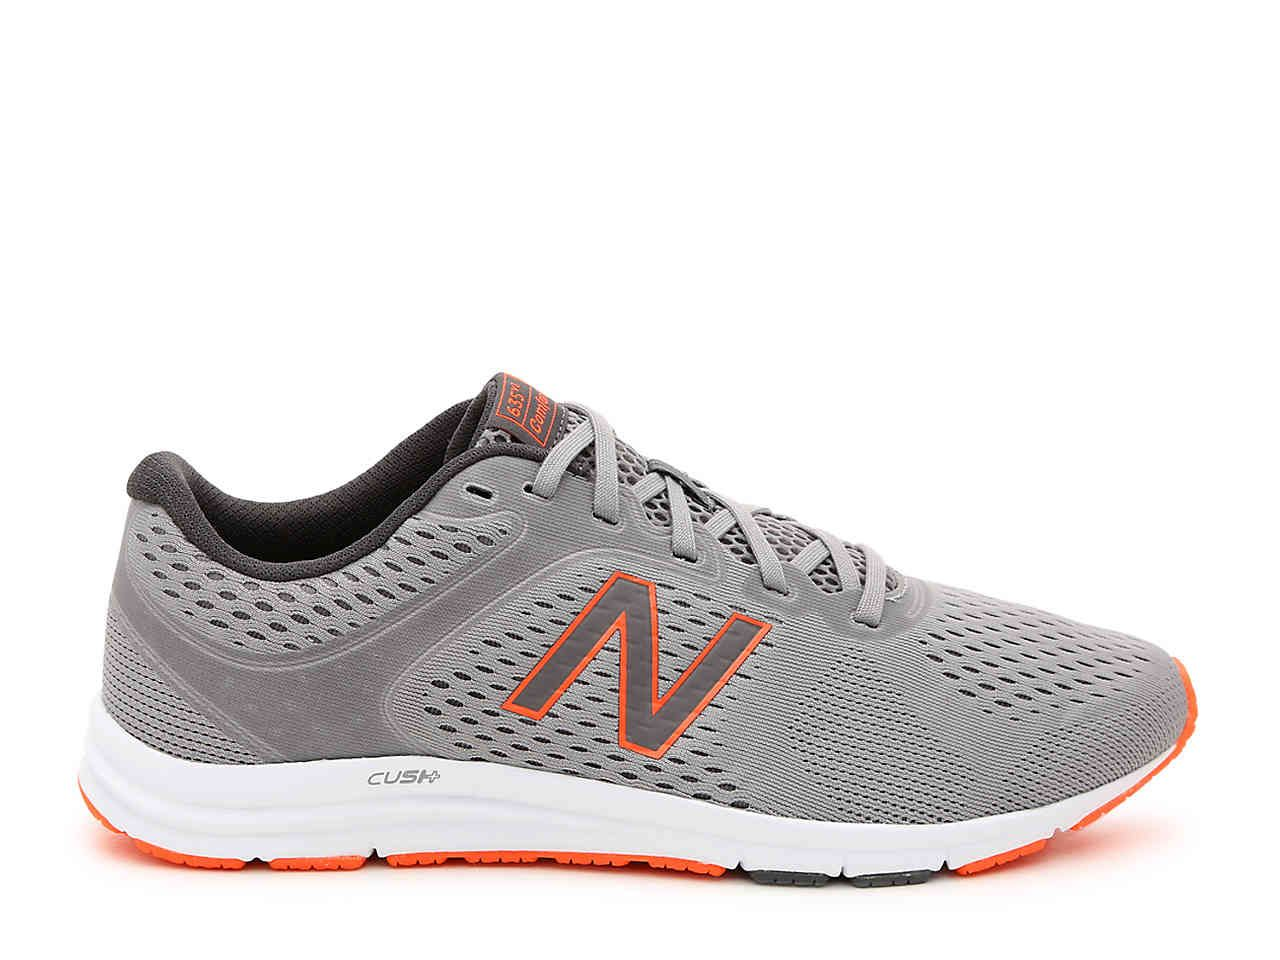 new balance running shoes dsw - 59% OFF